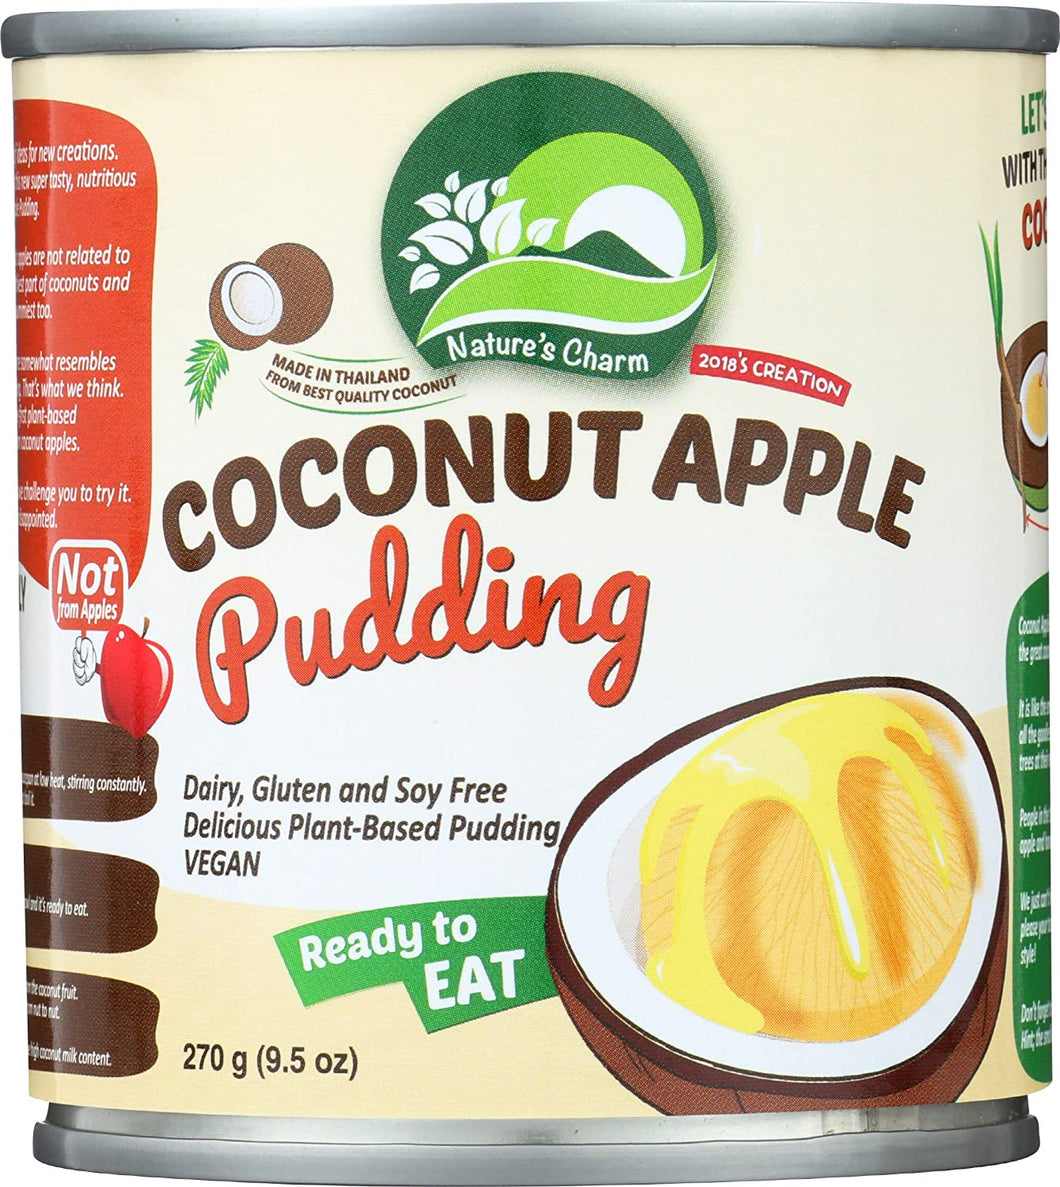 Nature's Charm - Coconut Apple Pudding (Vegan) - จาวมะพร้าว